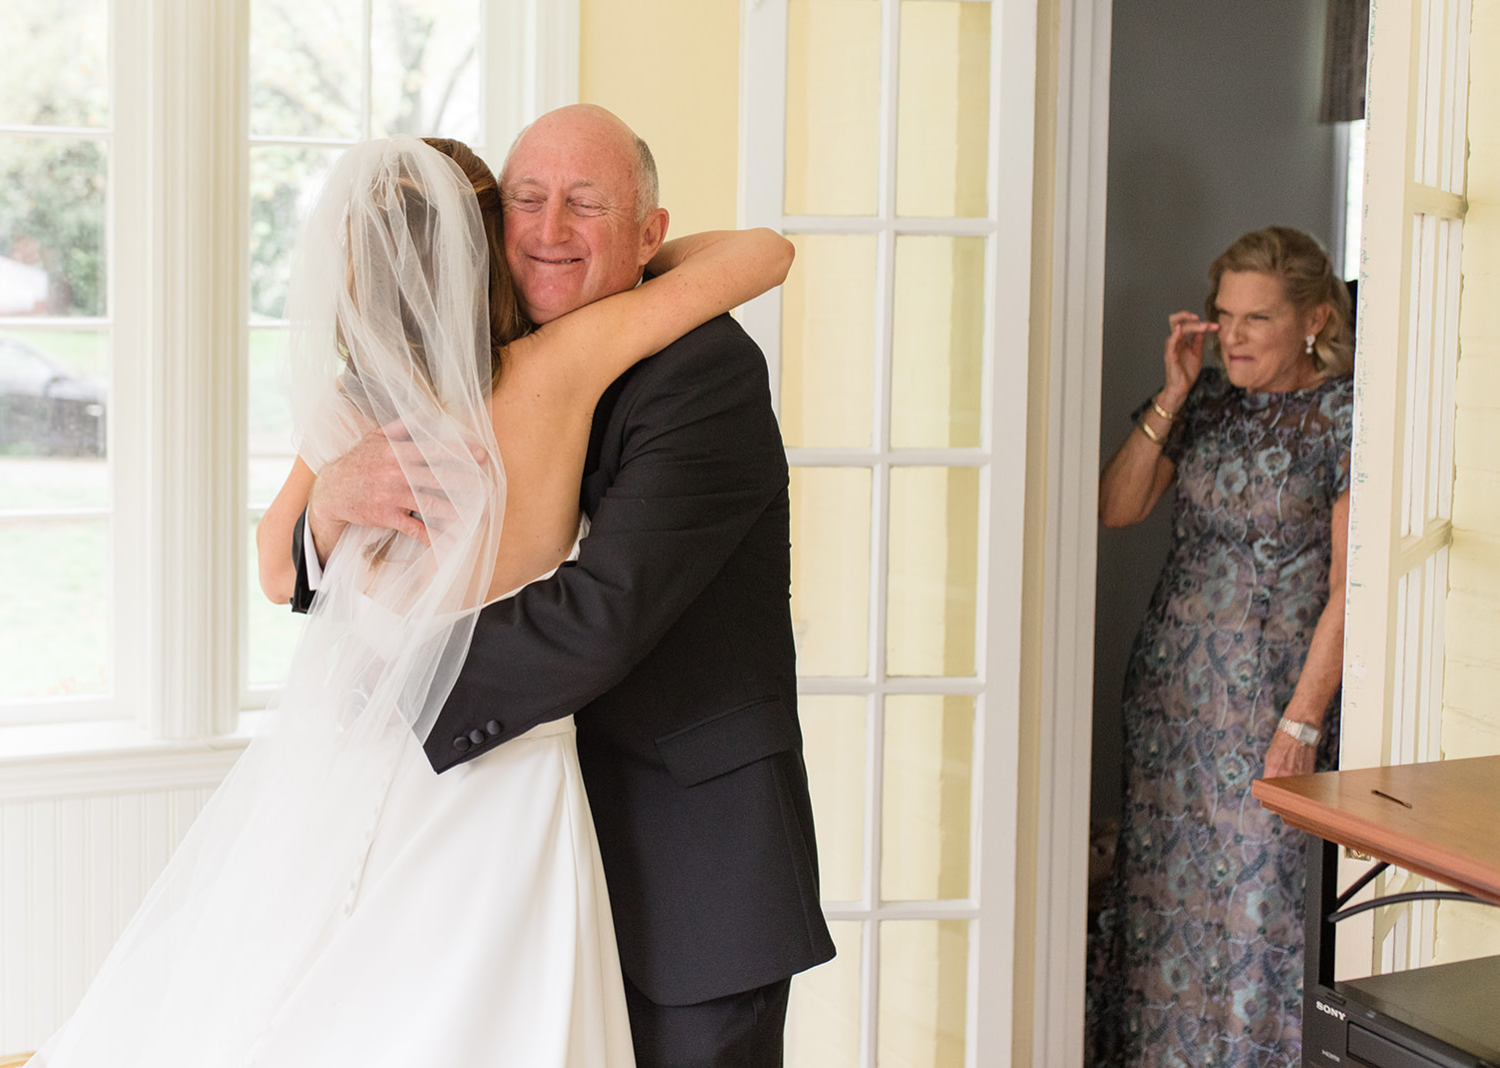 father of the bride and the bride share a hug